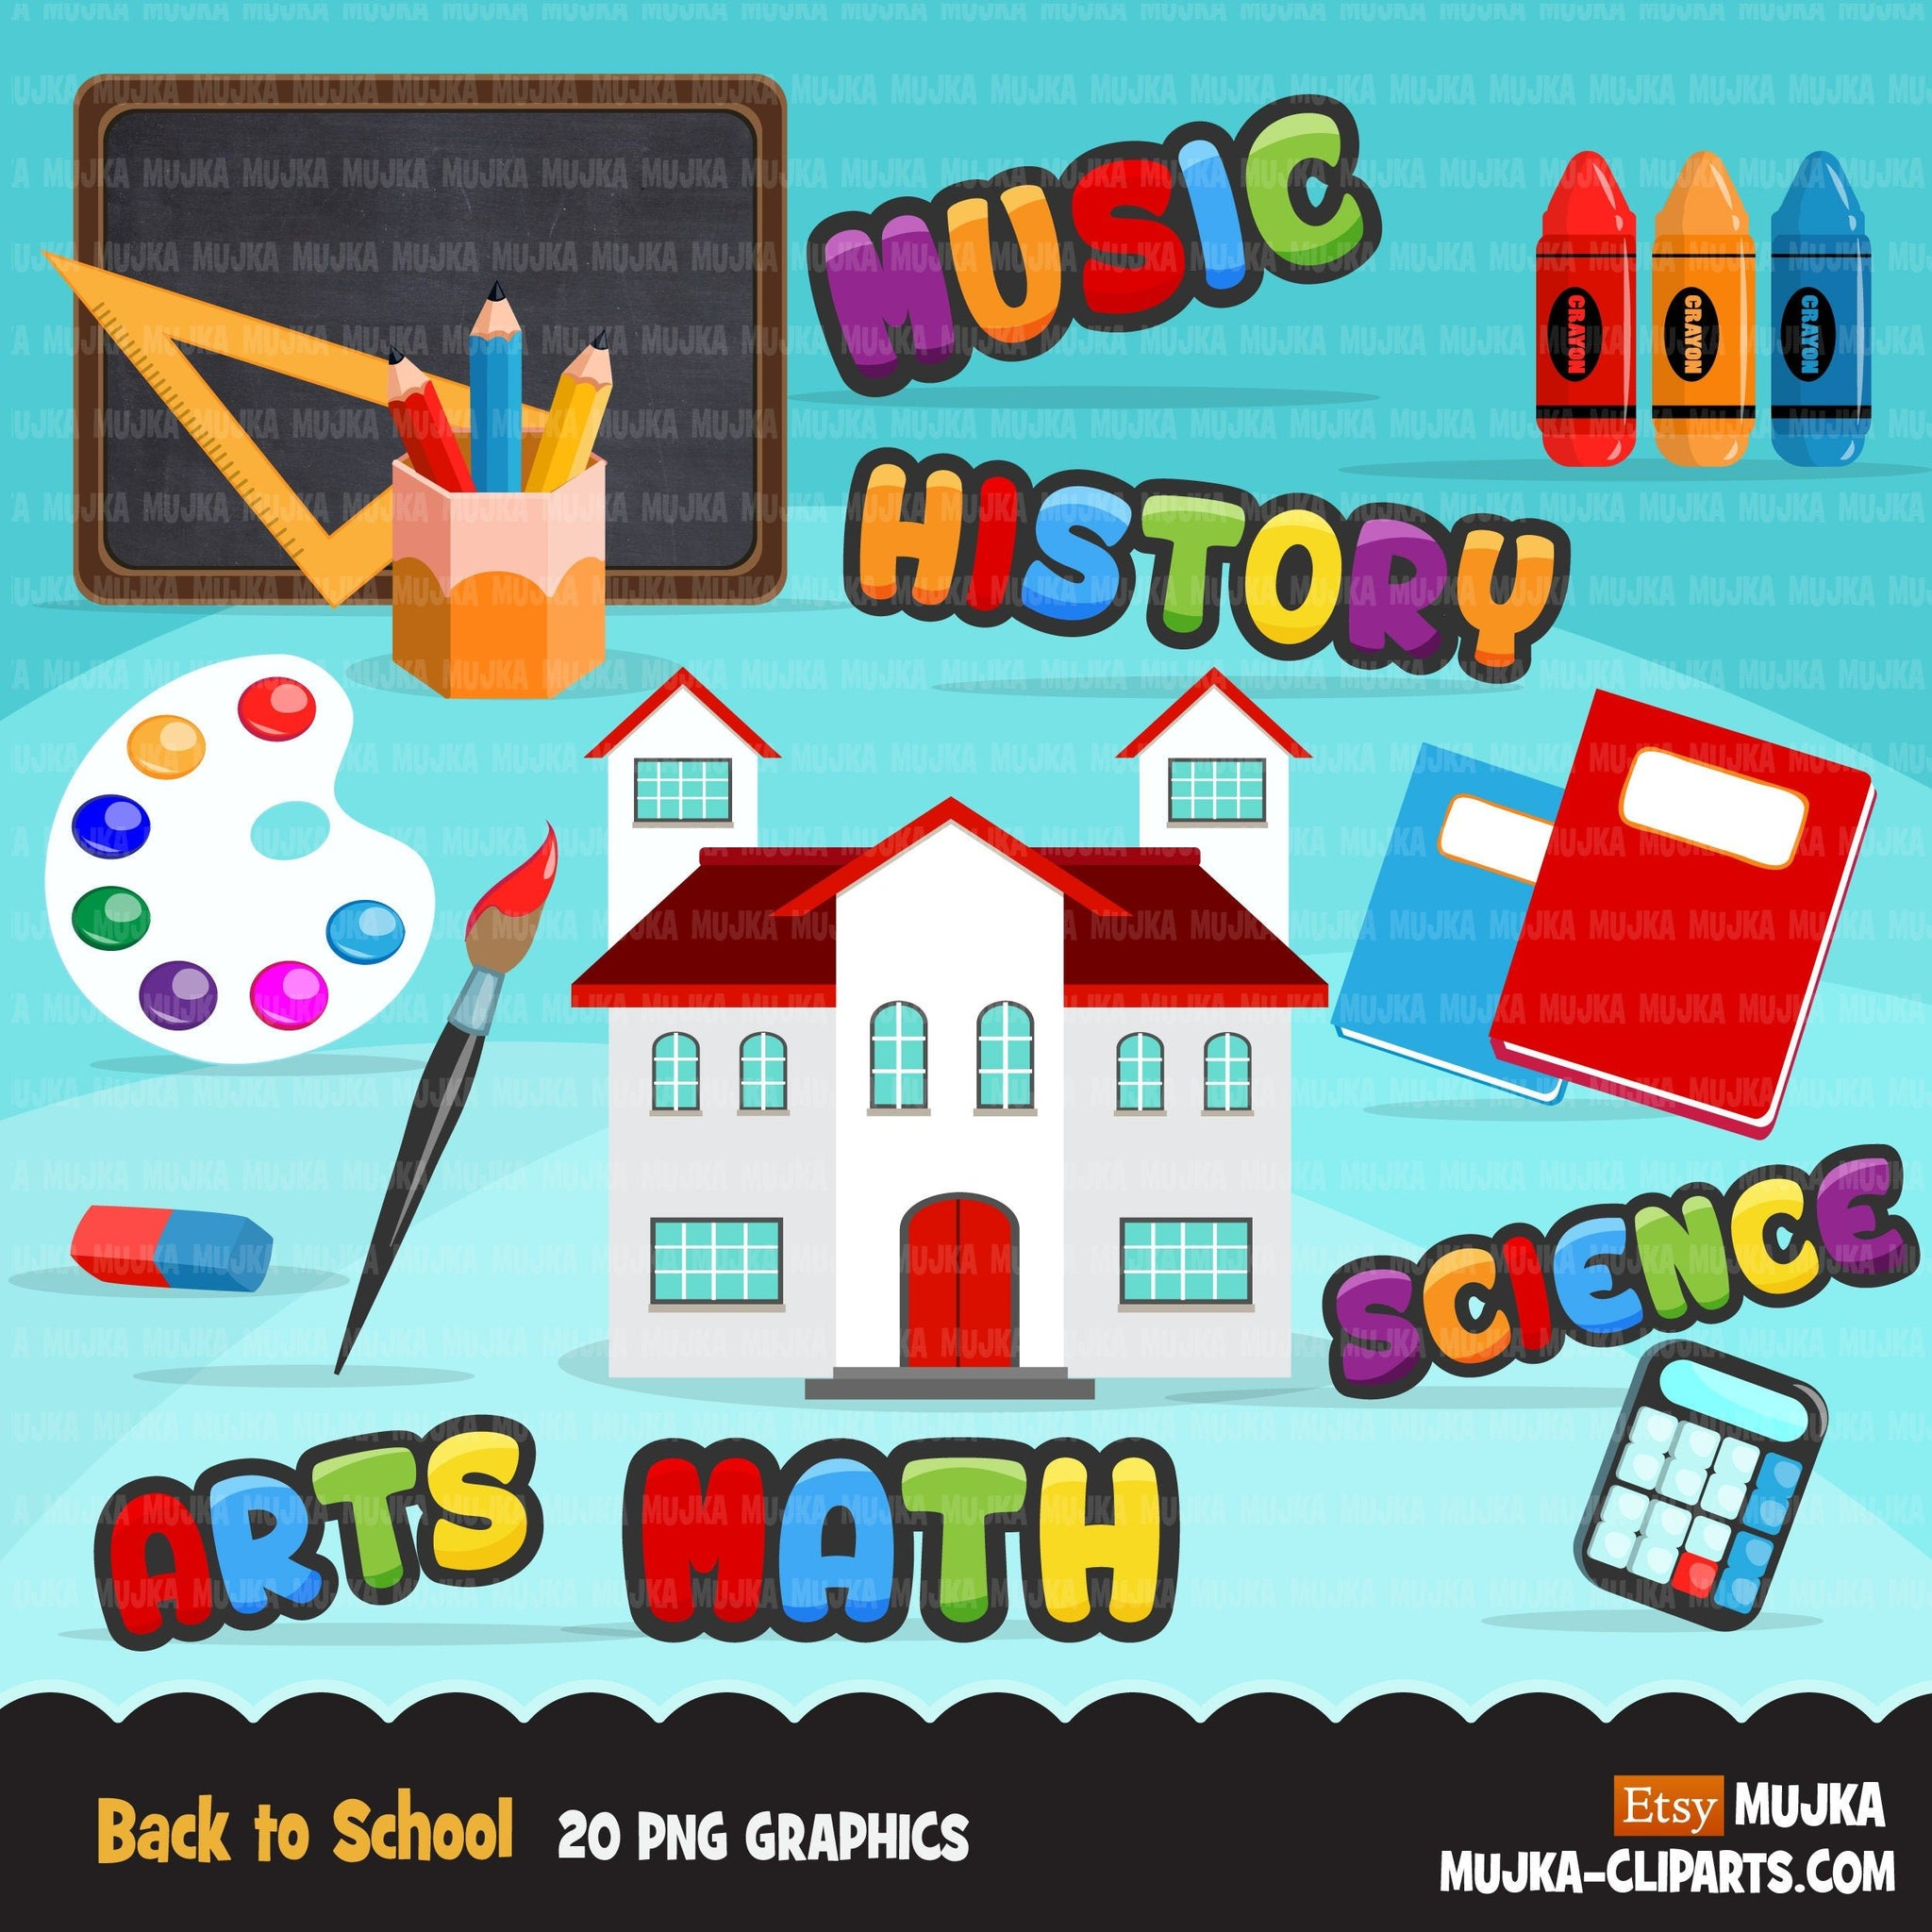 Back to school Clipart, Science, History, math, arts, music, black board, school supplies, apple, school graphics